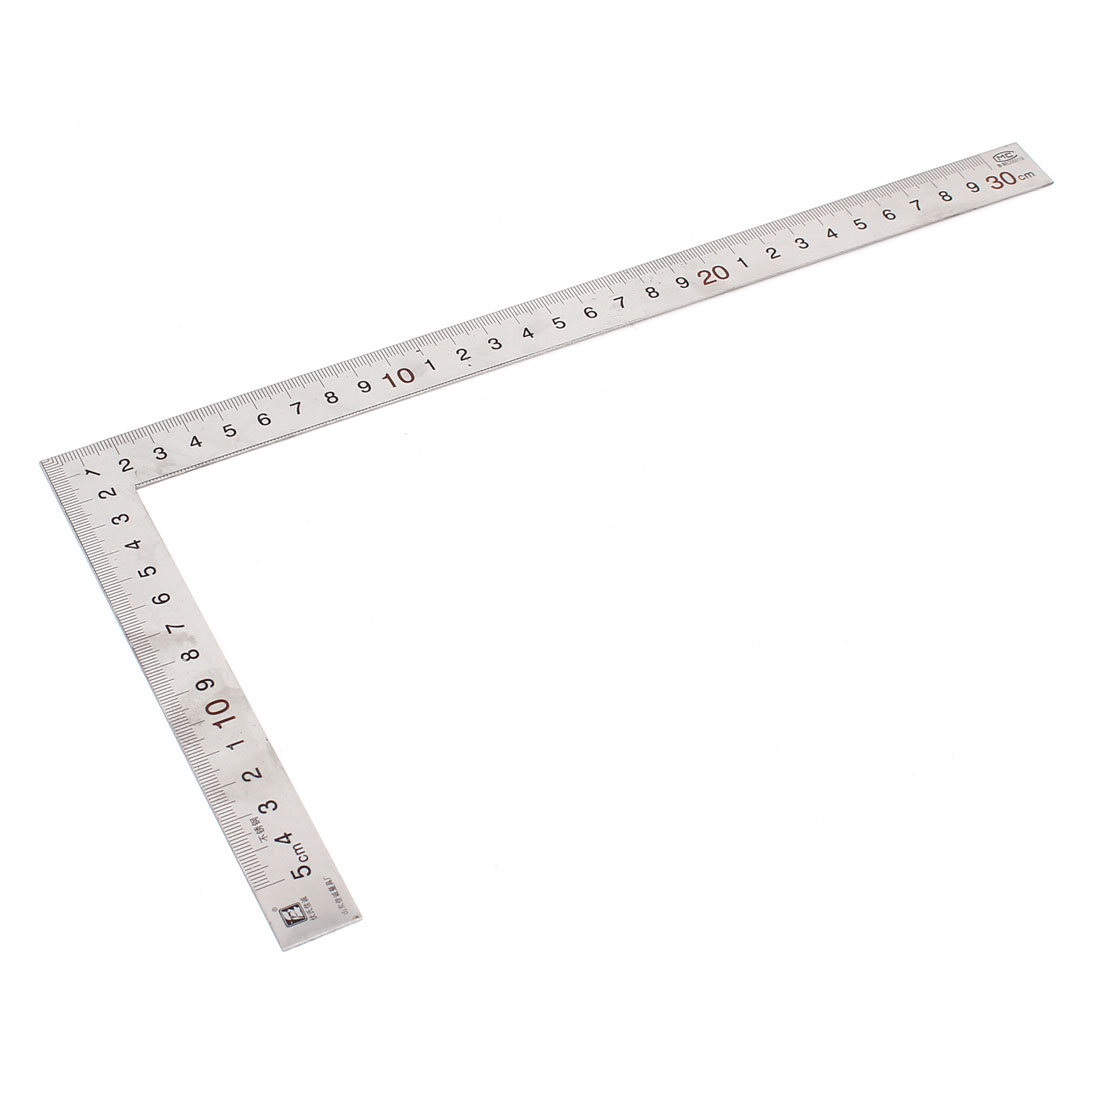 0-300mm Stainless Steel L Shaped Angle Square Ruler Measuring Tool